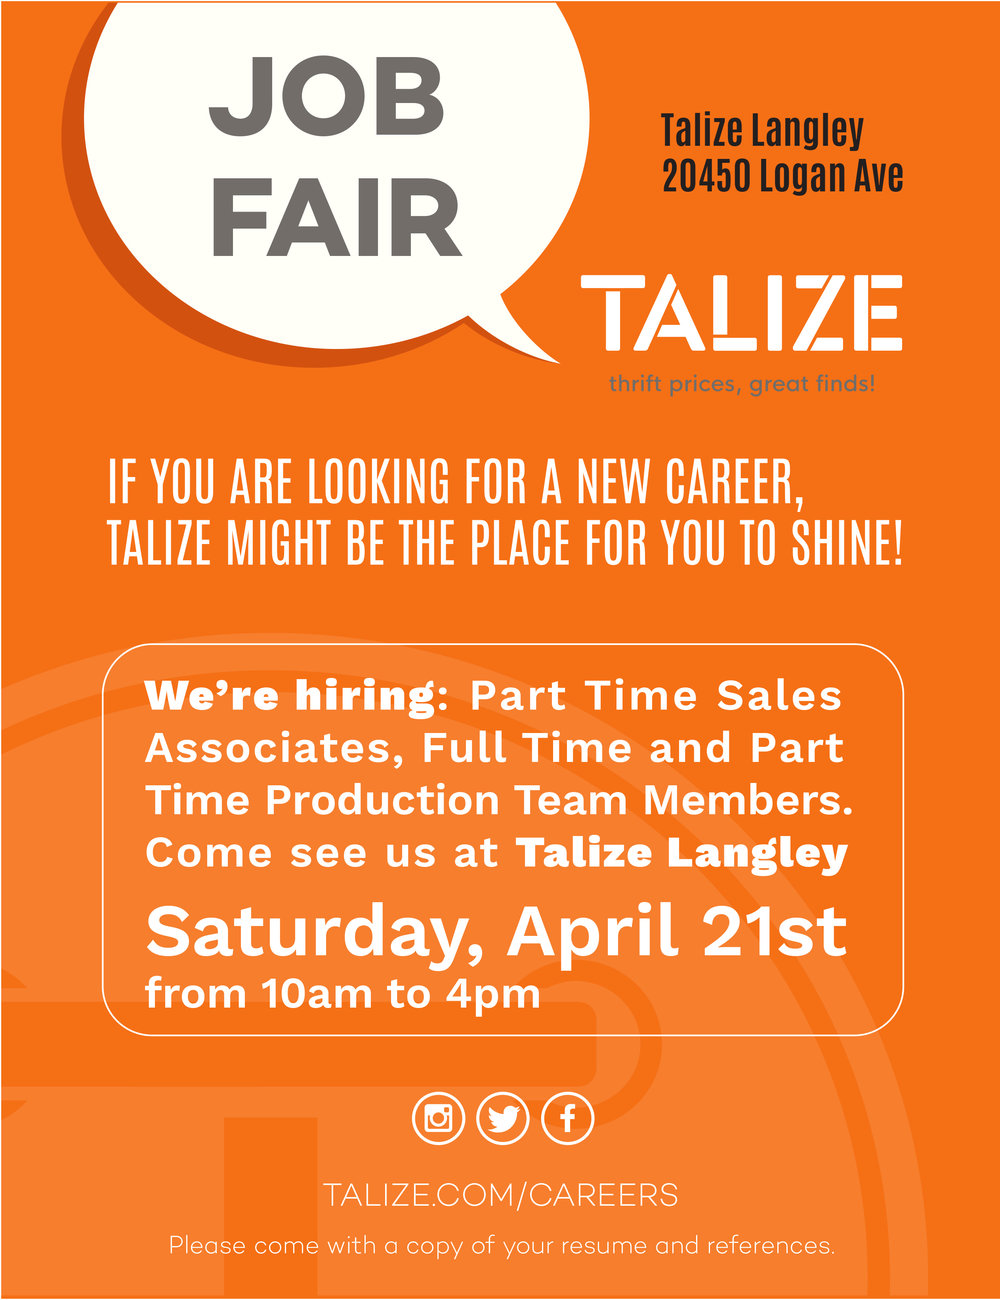 We're hiring: Part Time Sales Associates, Full Time and Part Time Production Team Members.  Come see us at Talize Langley Saturday, April 21st from 10am to 4pm